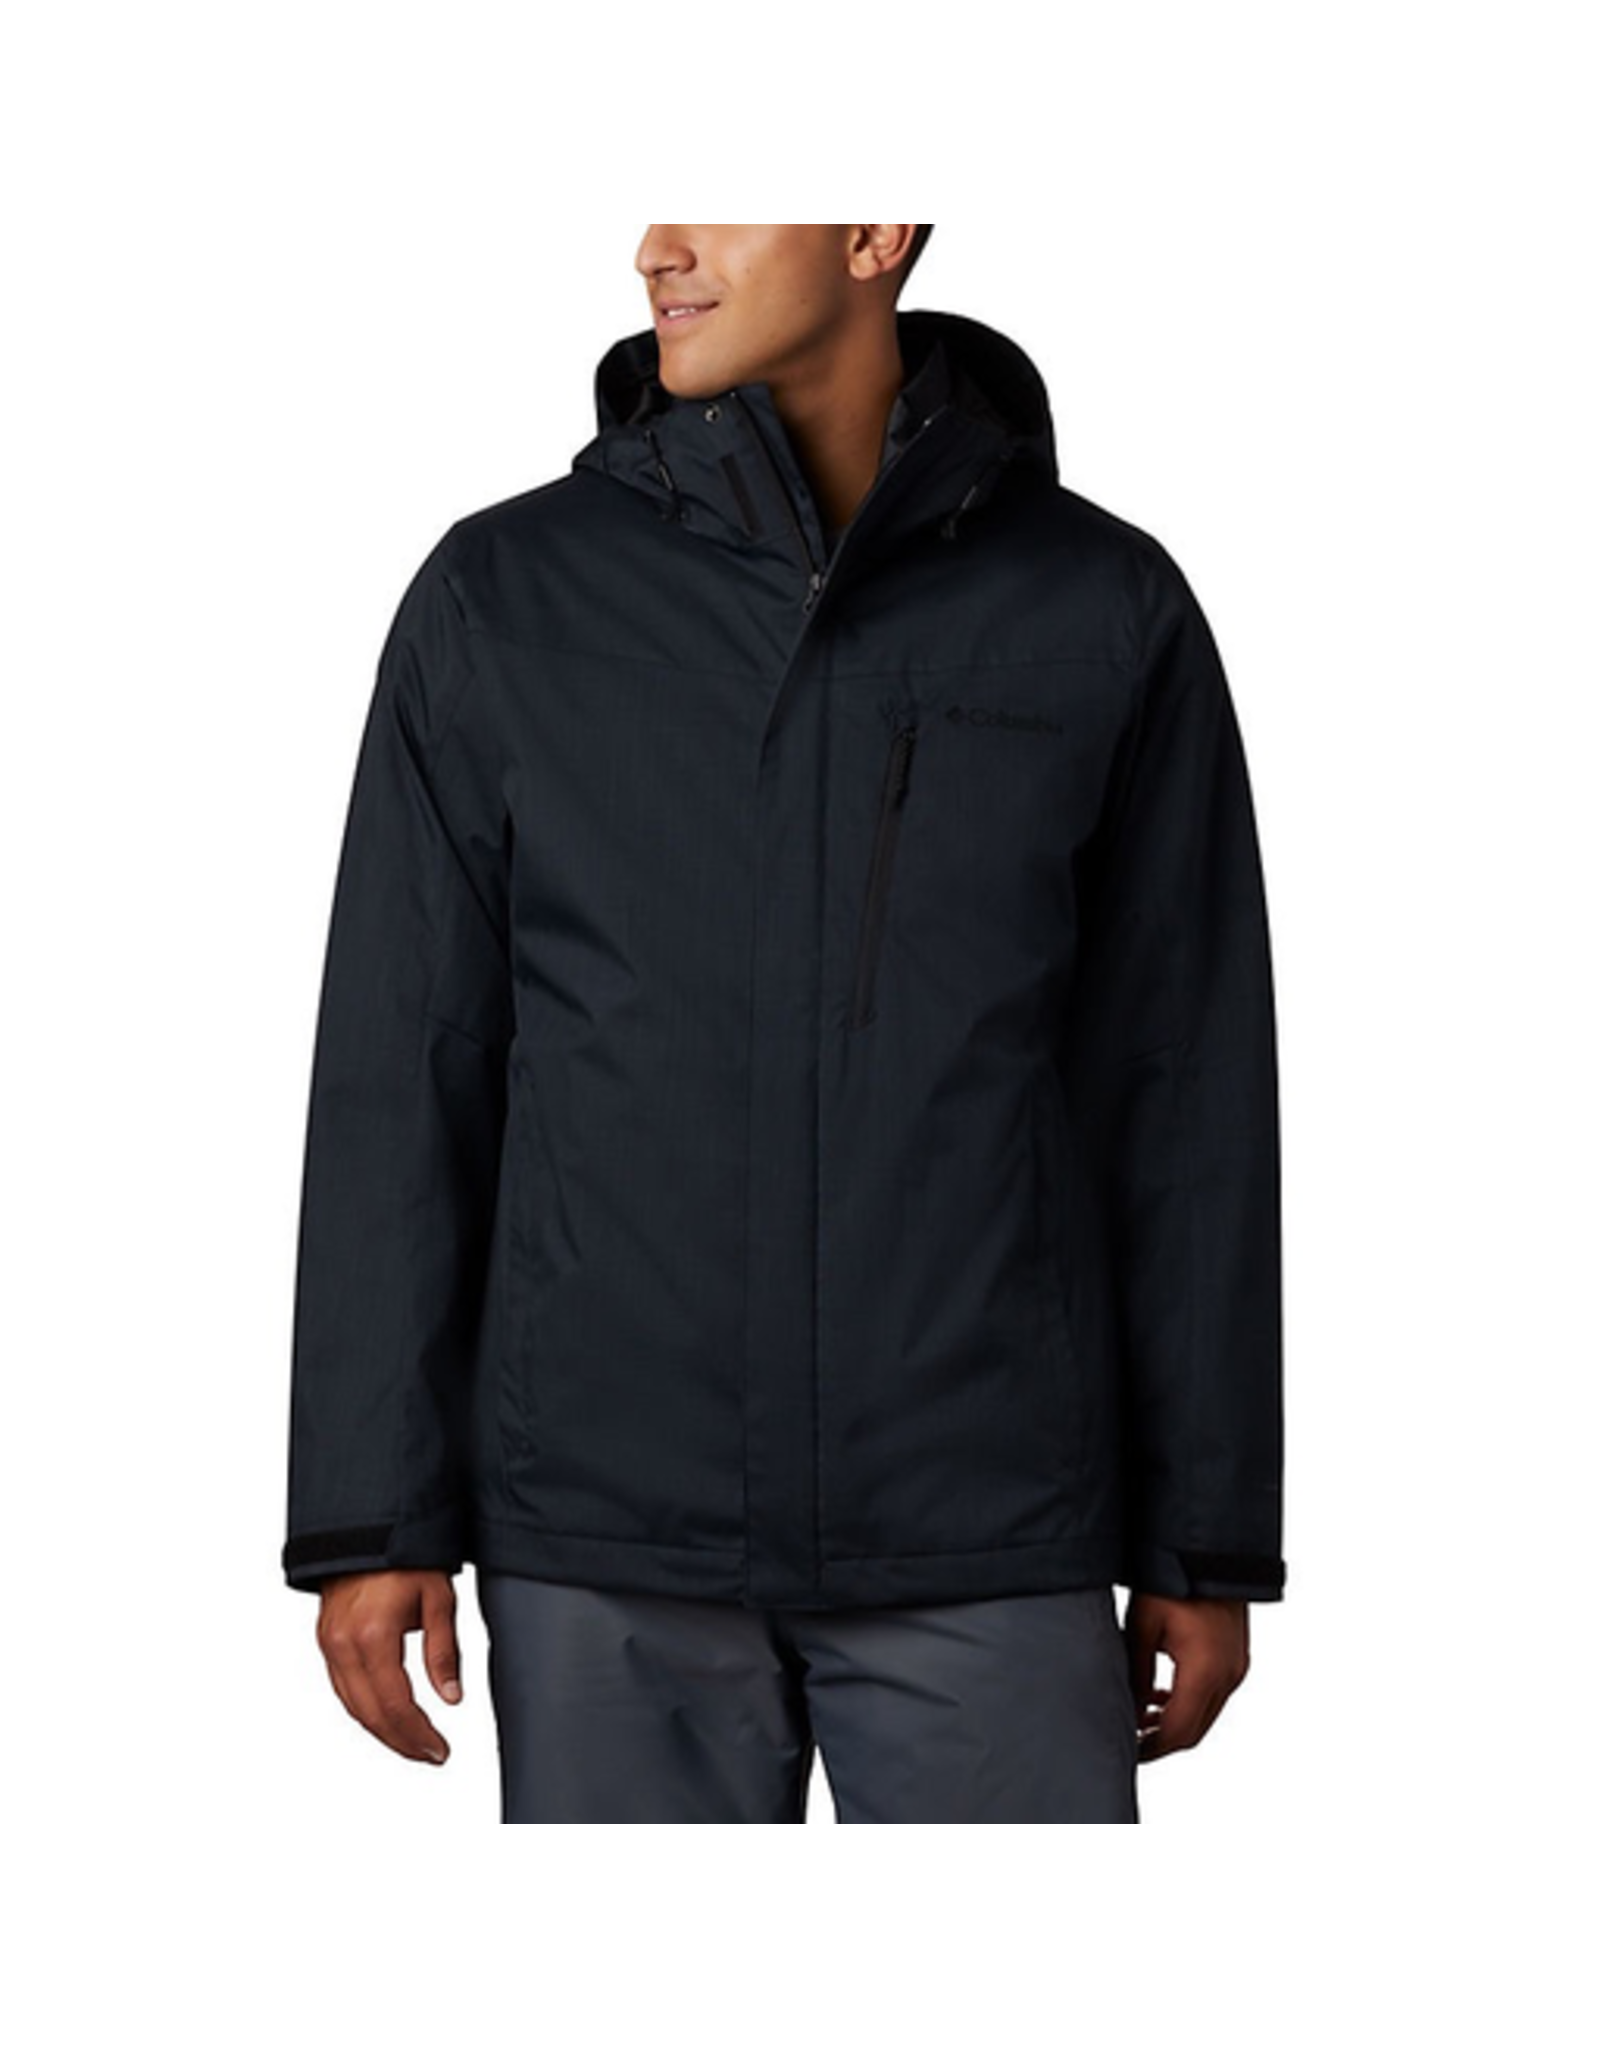 Columbia Columbia Men's Whirlibird IV Insulated Interchange Jacket